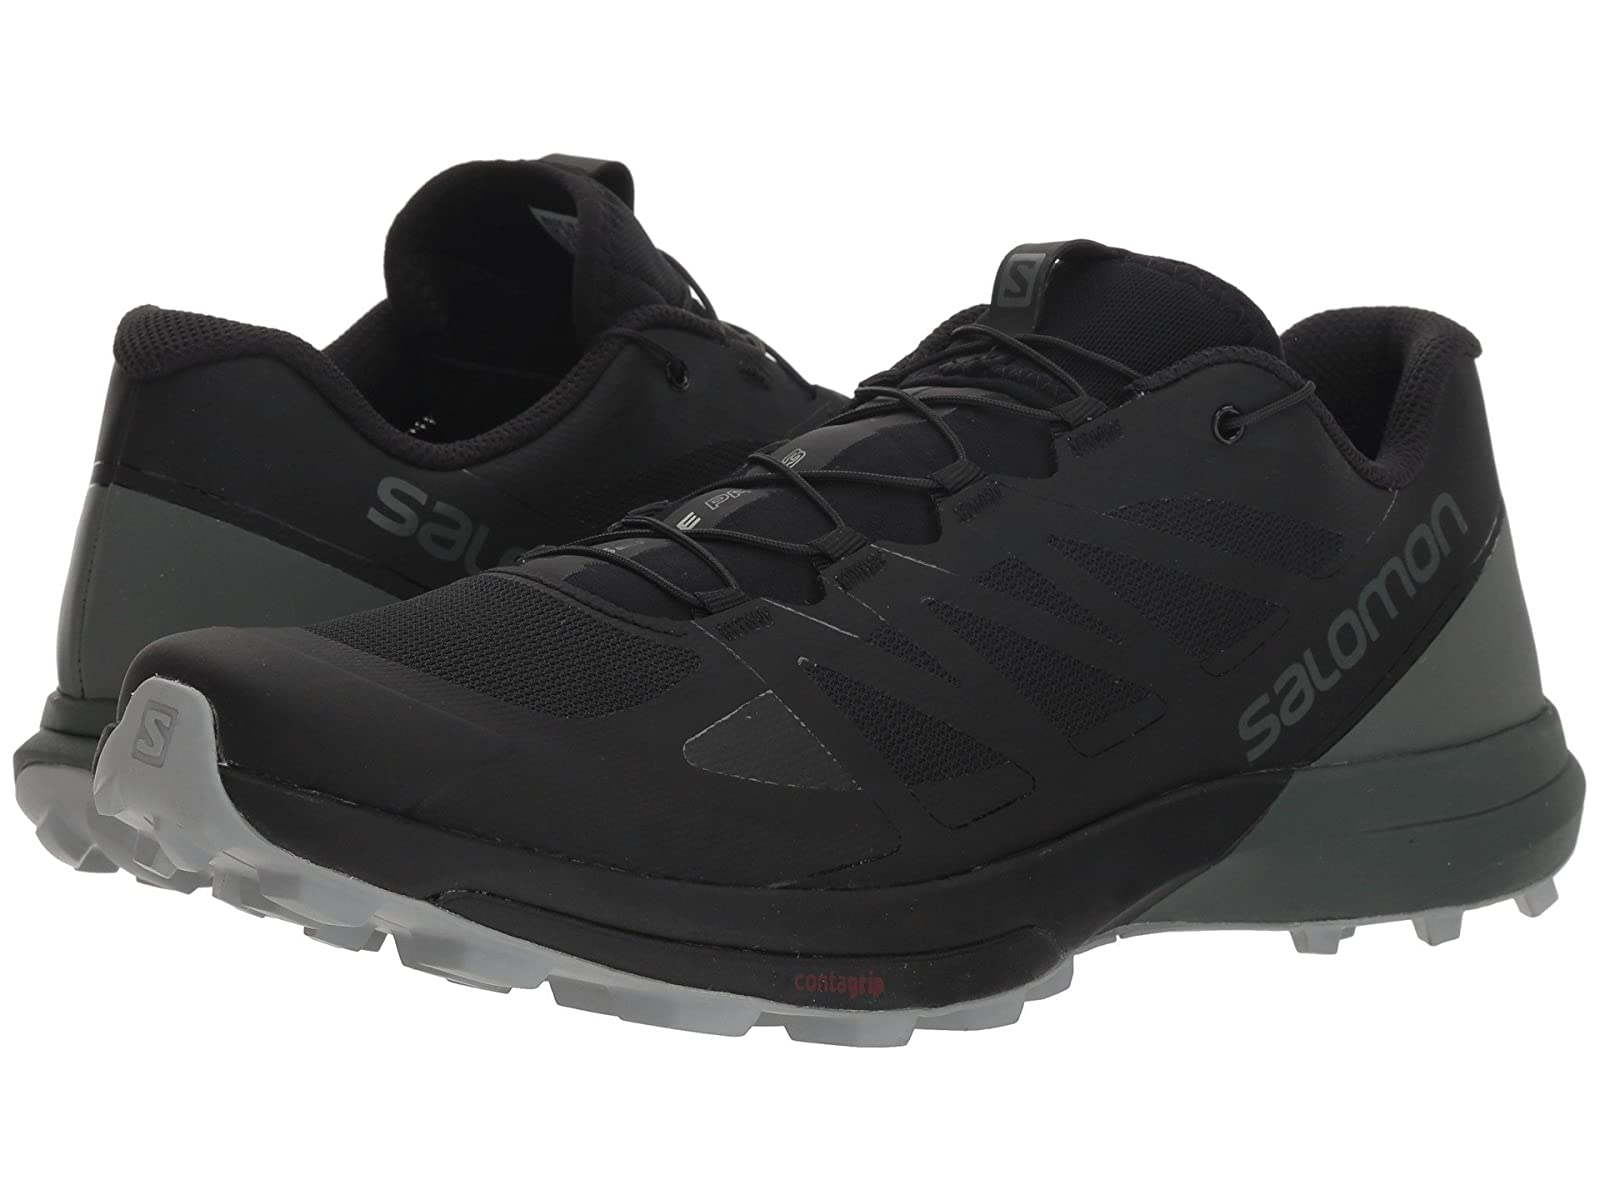 Salomon Sense Pro 3Atmospheric grades have affordable shoes